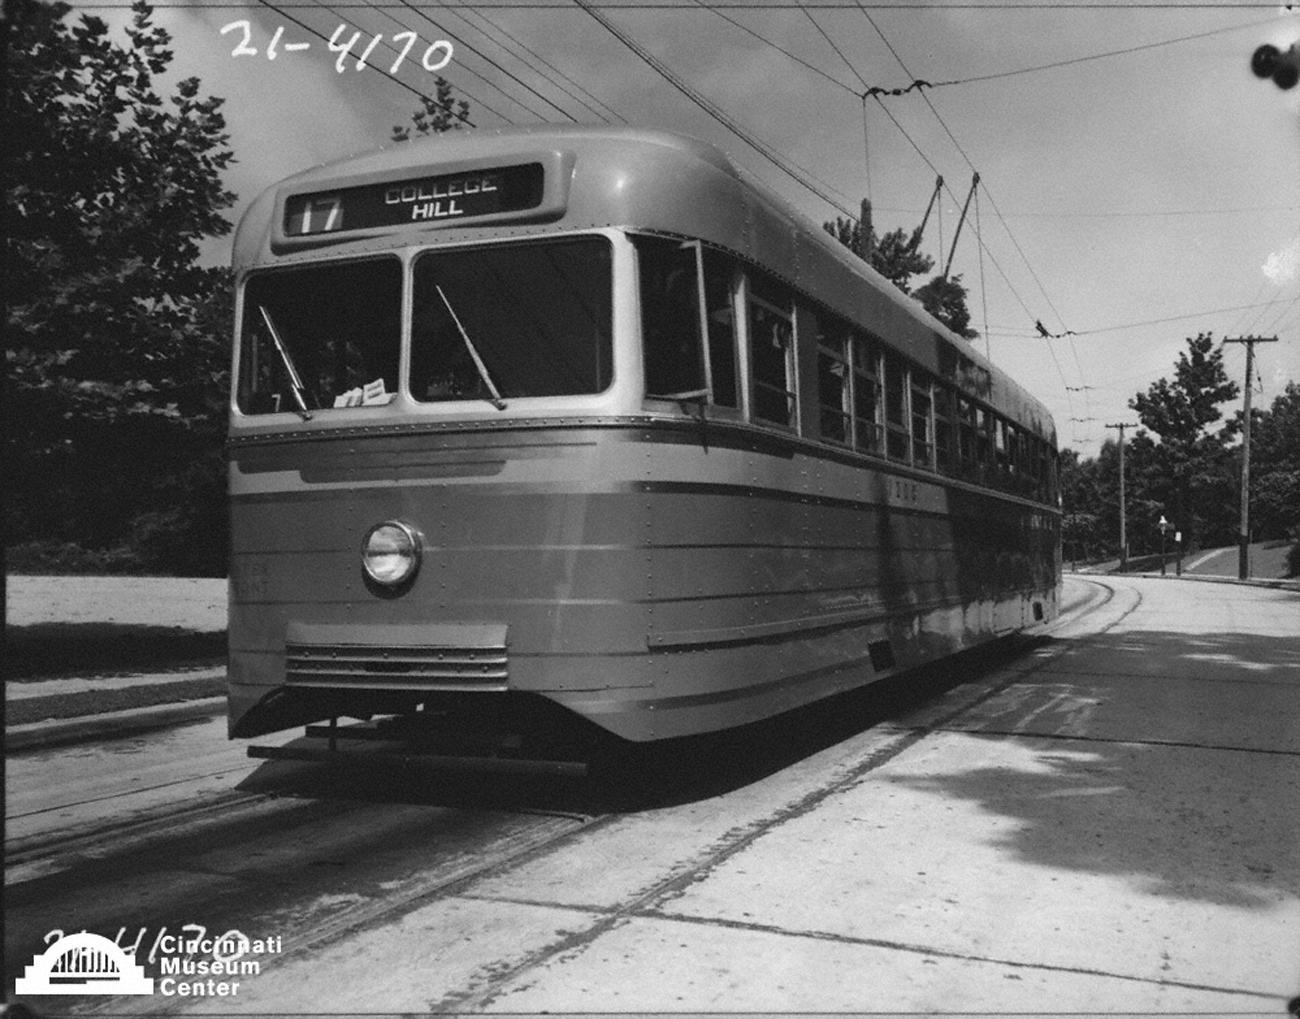 Before owning a car, Briol traveled through Cincinnati via streetcars, lugging his cameras along with him. After getting his own car later in life, driving it would take a pivotal toll on his life when he was severely injured in a head-on collision with a Greyhound Bus outside of Mason, Ohio in 1950. He never fully recovered, and eventually passed away in 1969. Pictured is the Route 17 Streetcar sometime in the early 20th Century. / Image: Paul Briol,  accessed via the Cincinnati Museum Center History Library and Archives // Published: 2.16.19